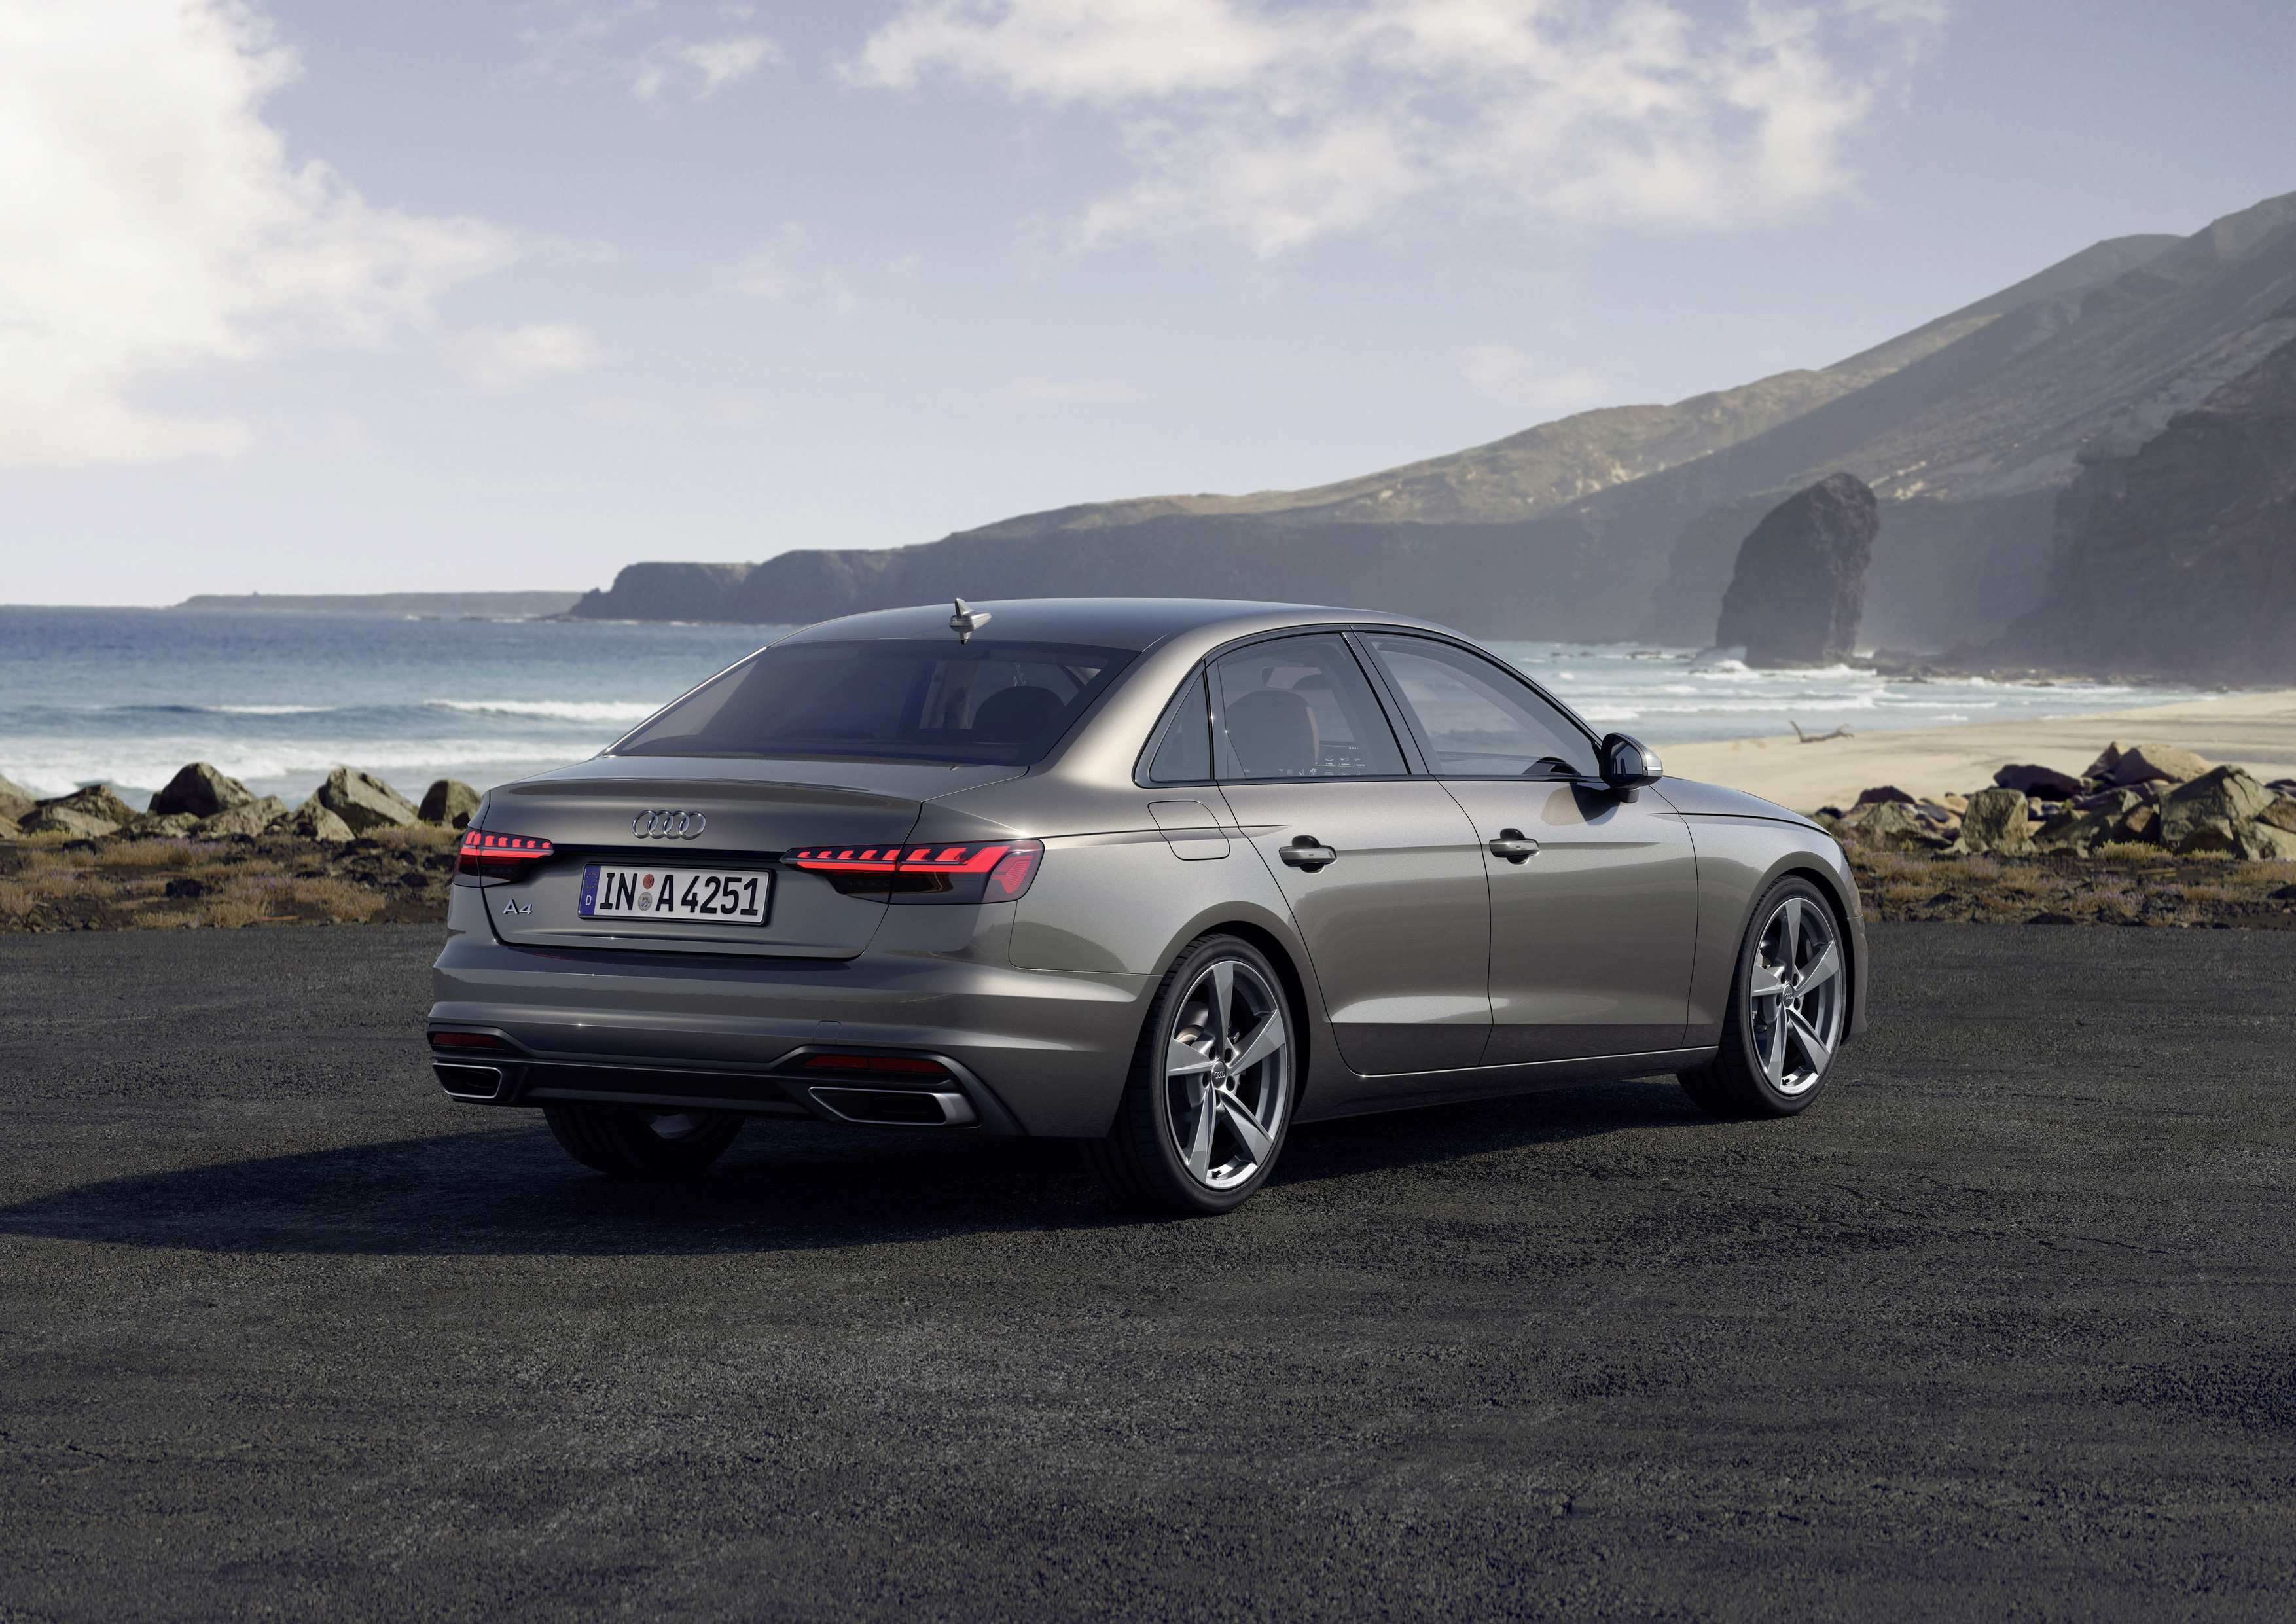 66 New Audi A4 Model Year 2020 Release Date And Concept